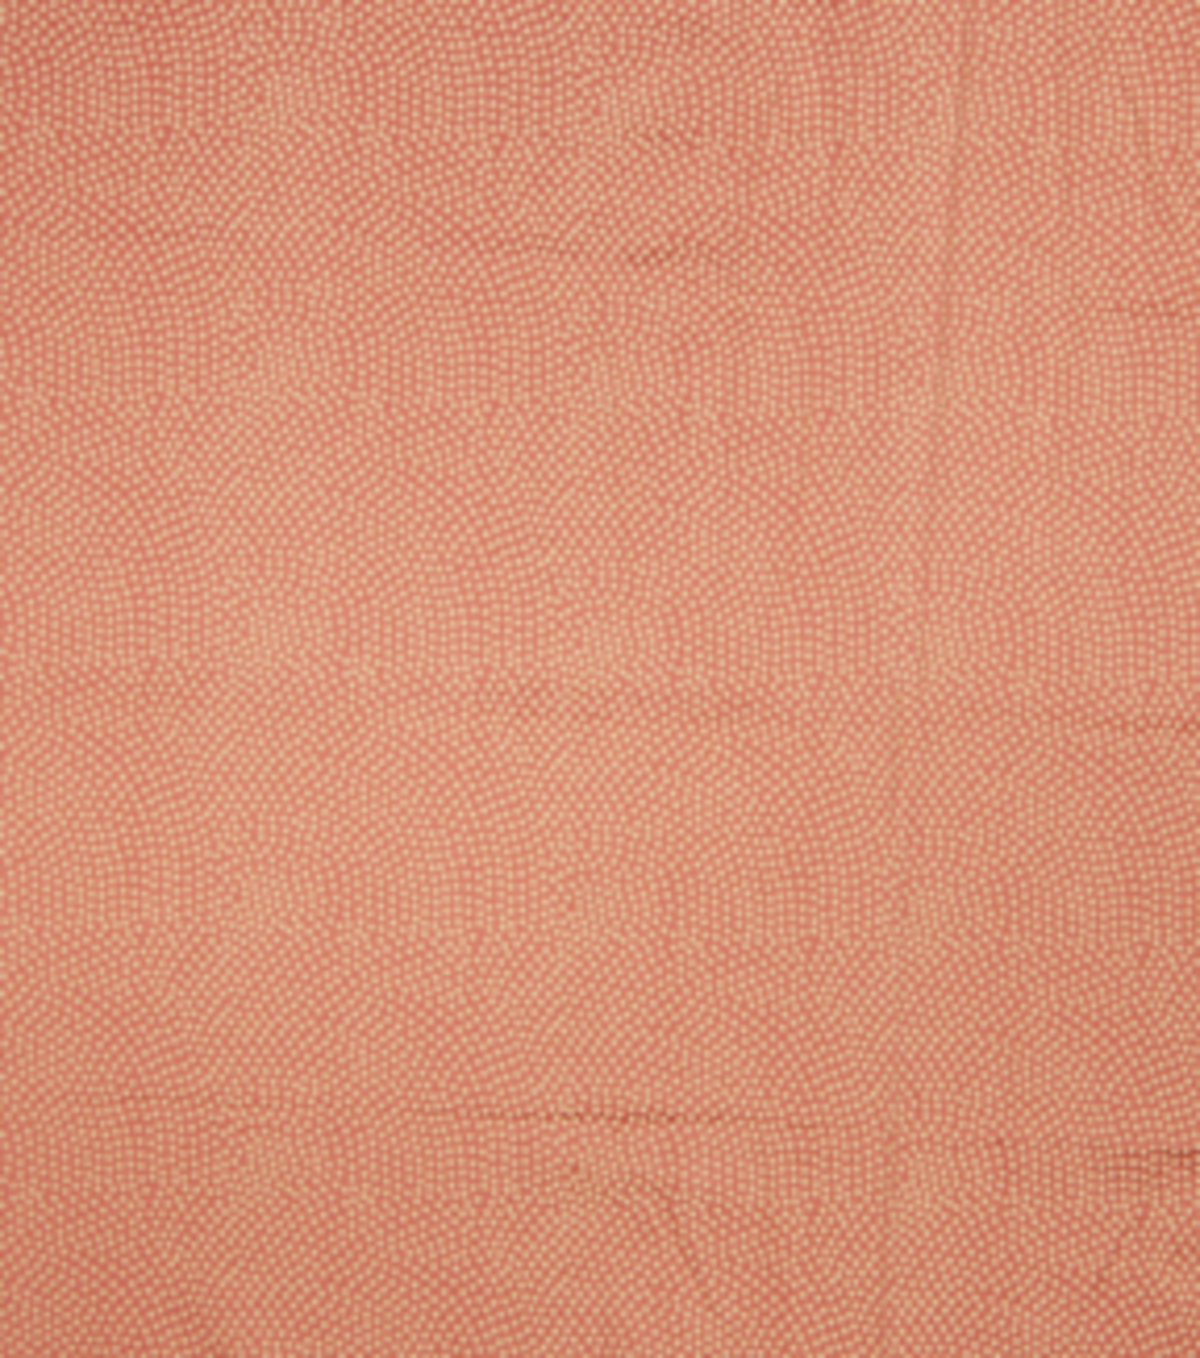 Home Decor 8\u0022x8\u0022 Fabric Swatch-Upholstery Fabric Eaton Square Buffet Coral